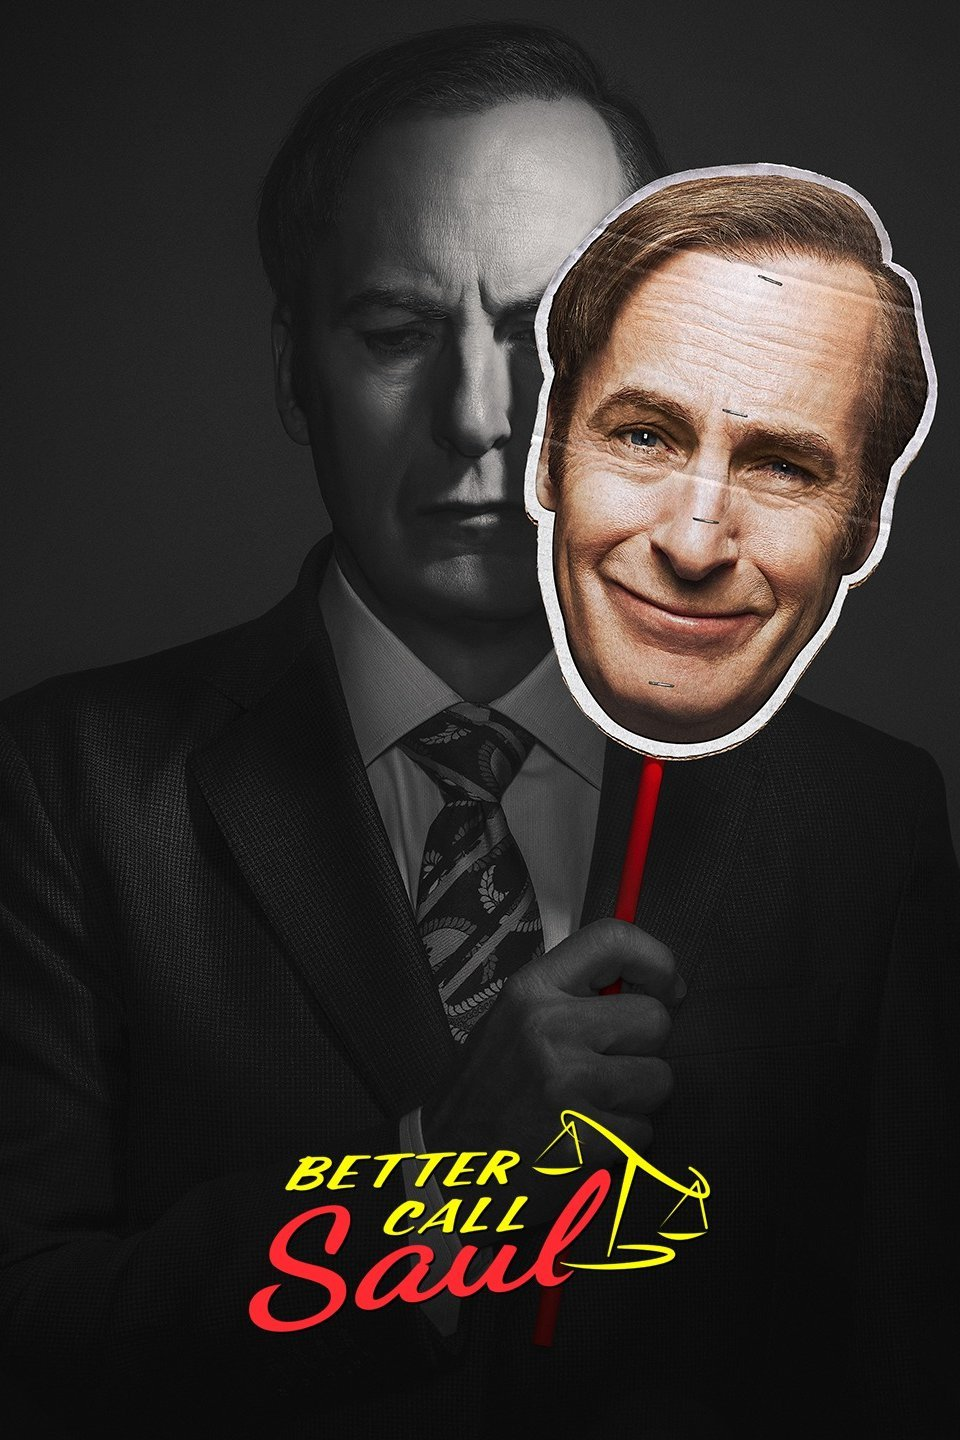 Better Call Saul Season 4 Download HDTV (Episode 3 Added)